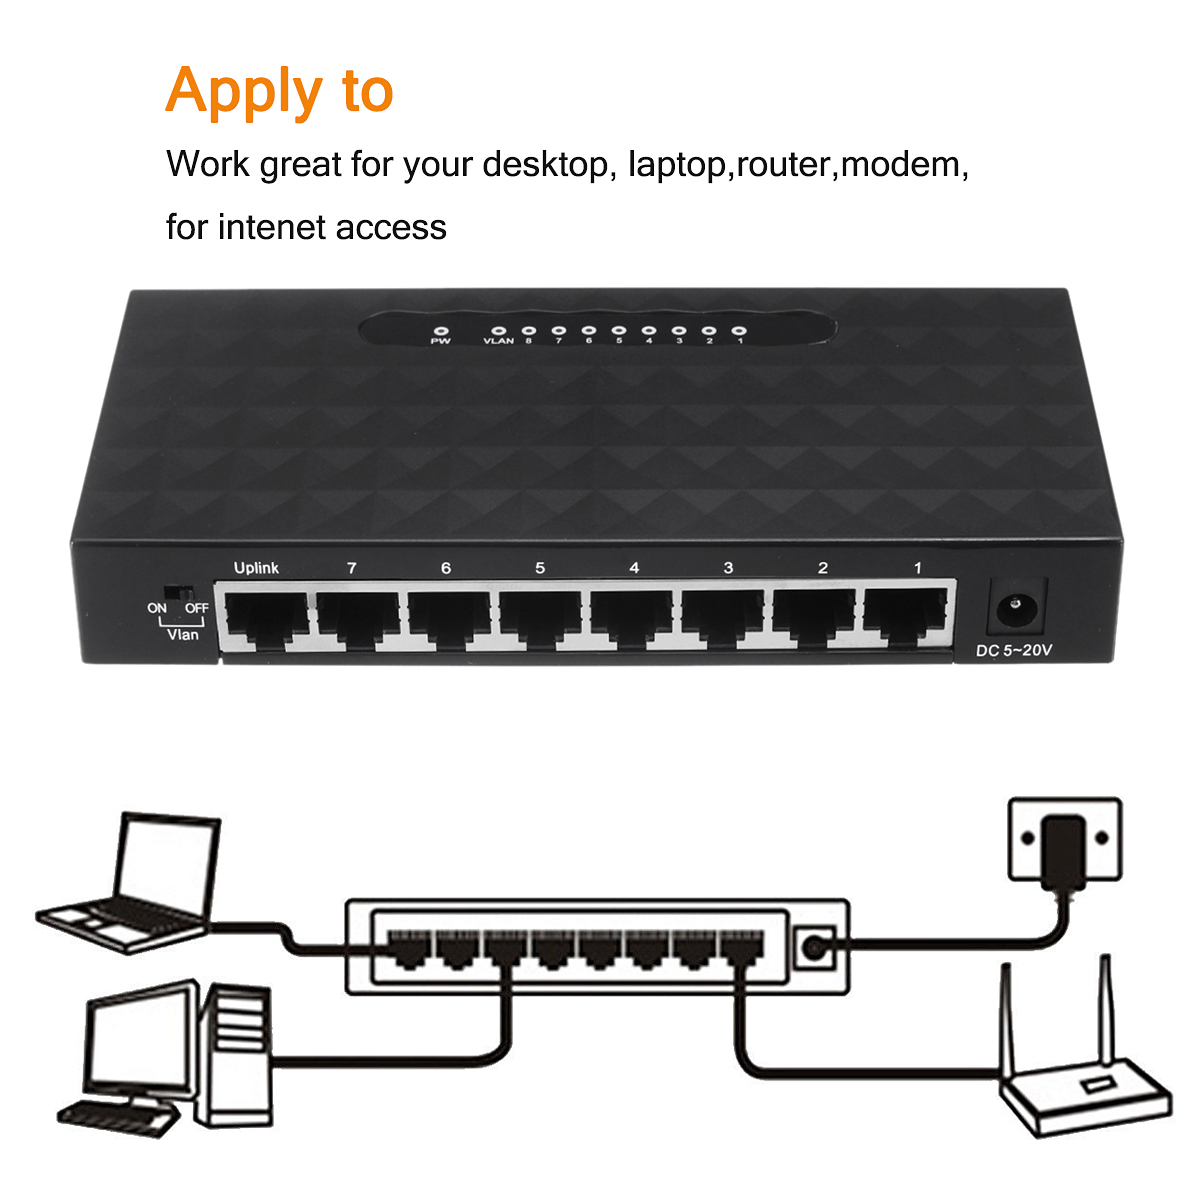 8-Port RJ45 10/100/1000Mbps Gigabit Ethernet Network Switch Lan Hub Adapter for Routers Modems